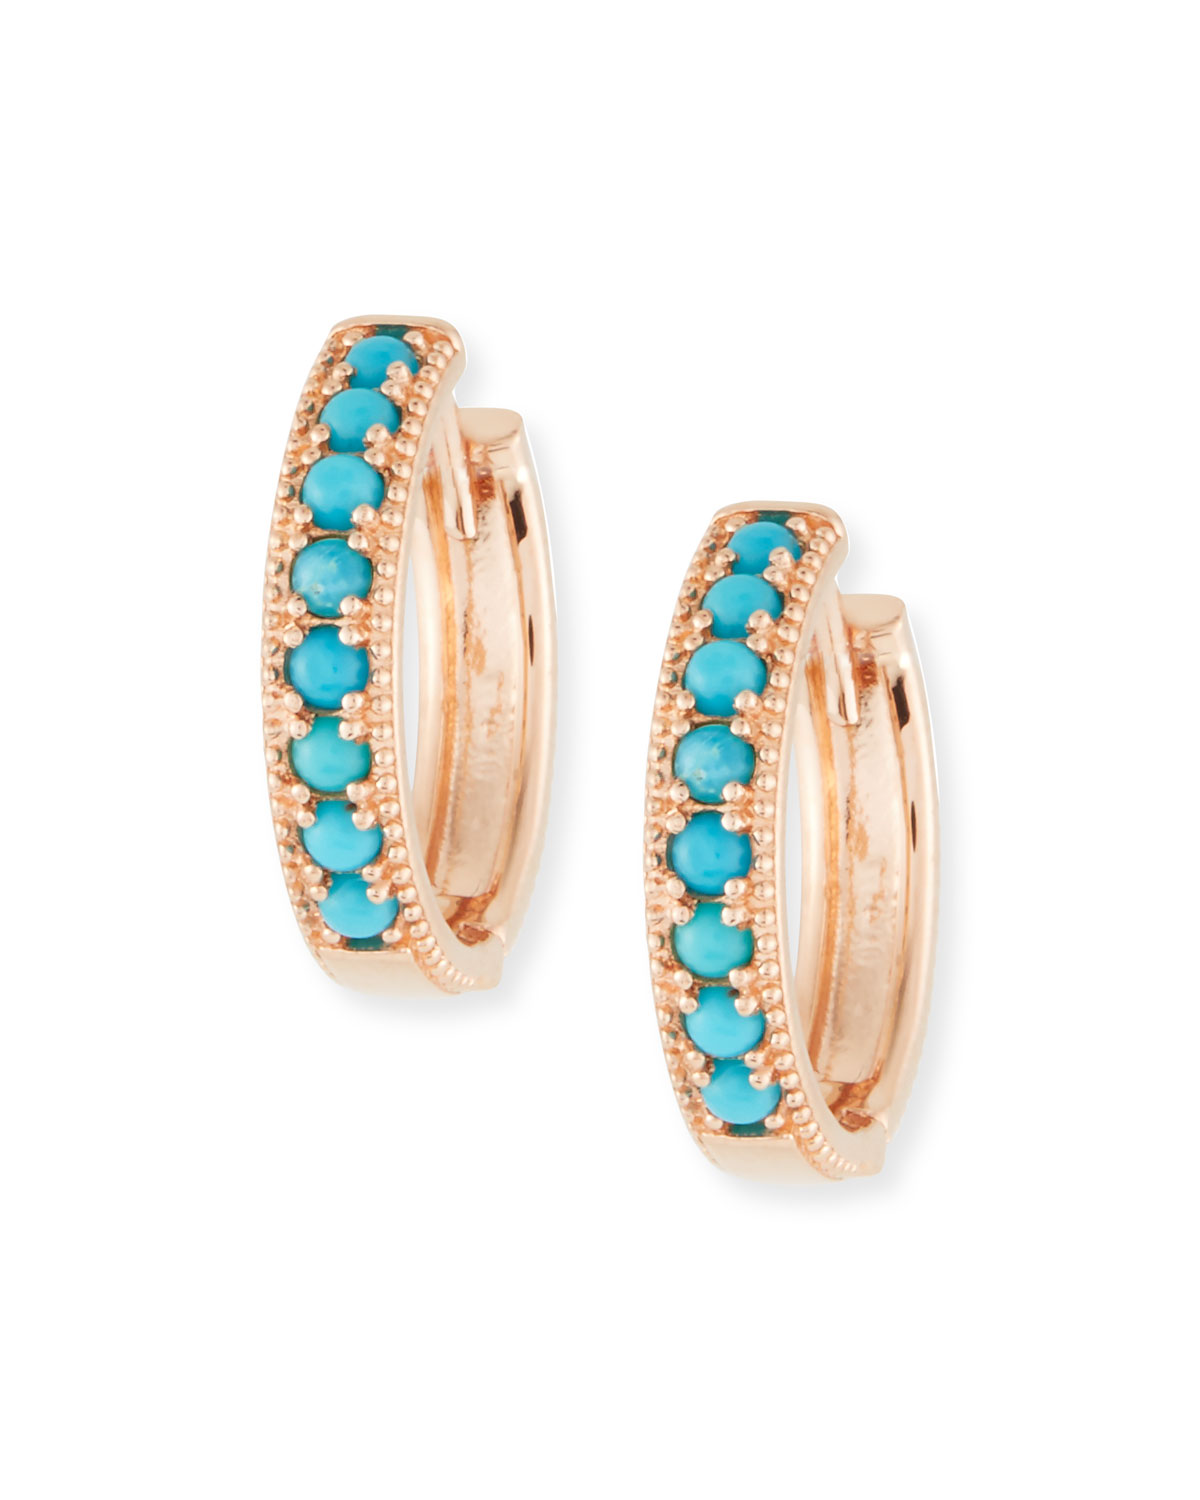 14k Rose Gold Turquoise Hoop Earrings